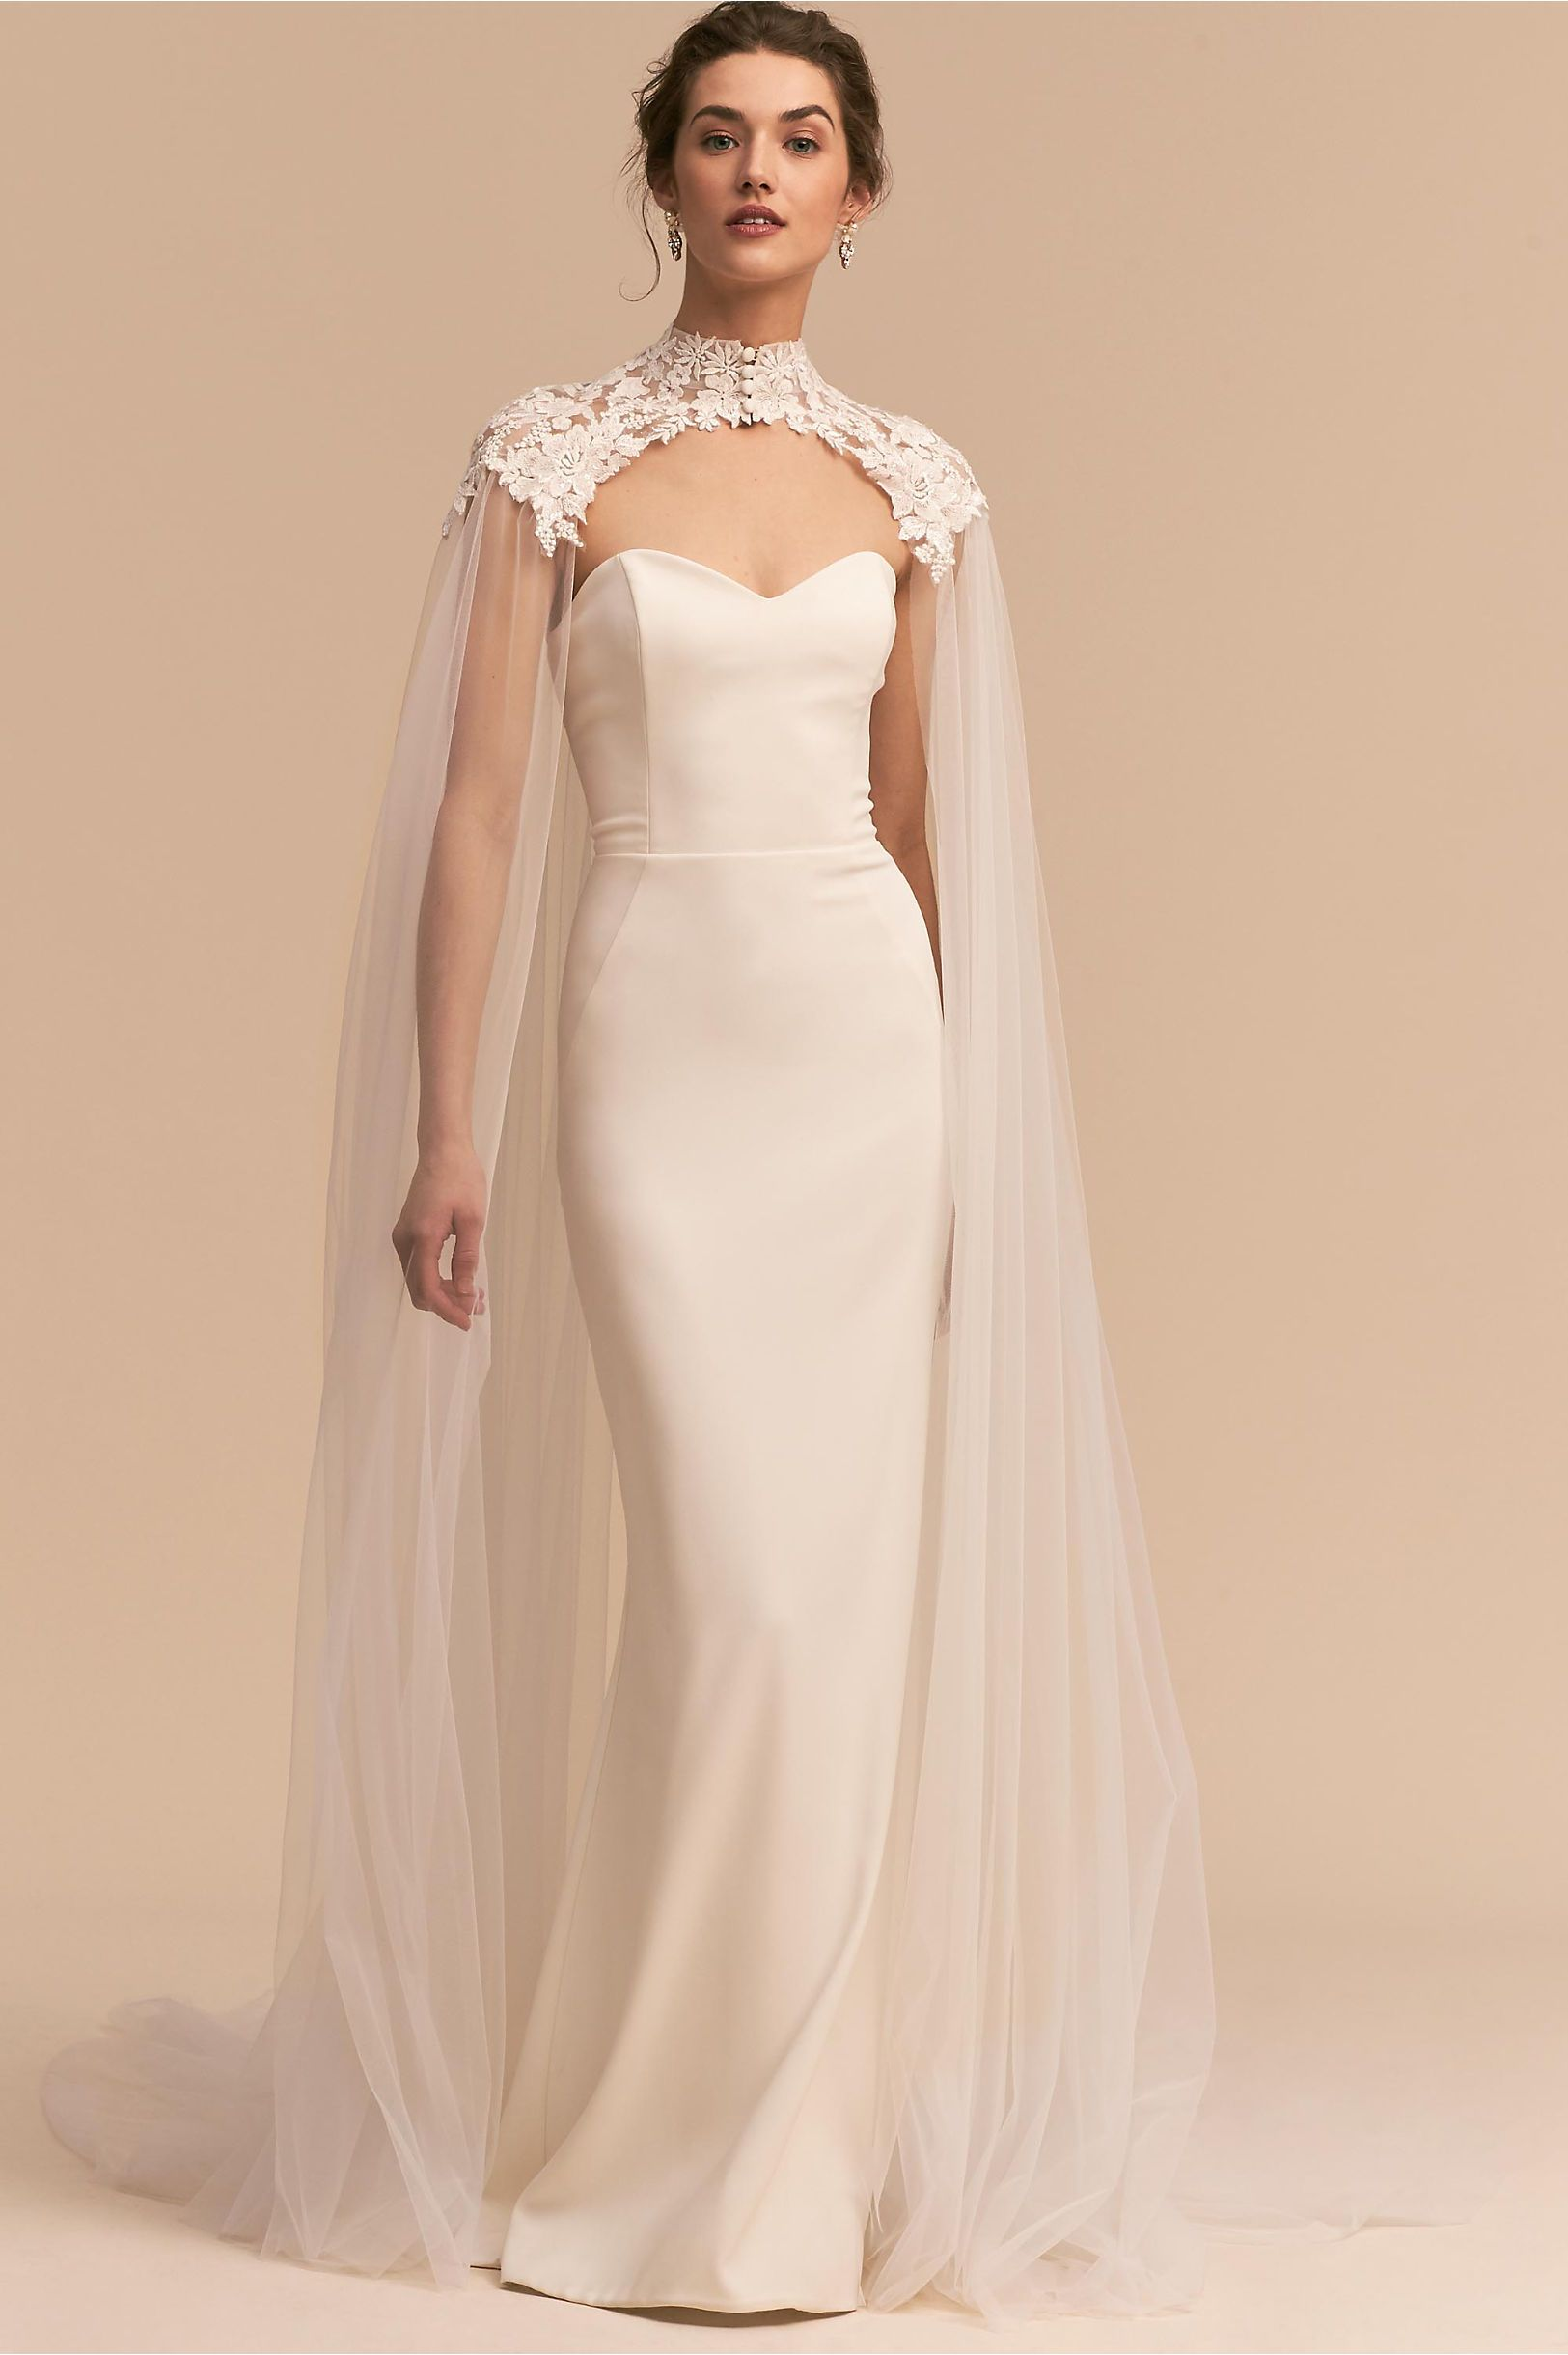 173a82c46f BHLDN's Eddy K Vincent Cape in Ivory | Products | Wedding cape ...